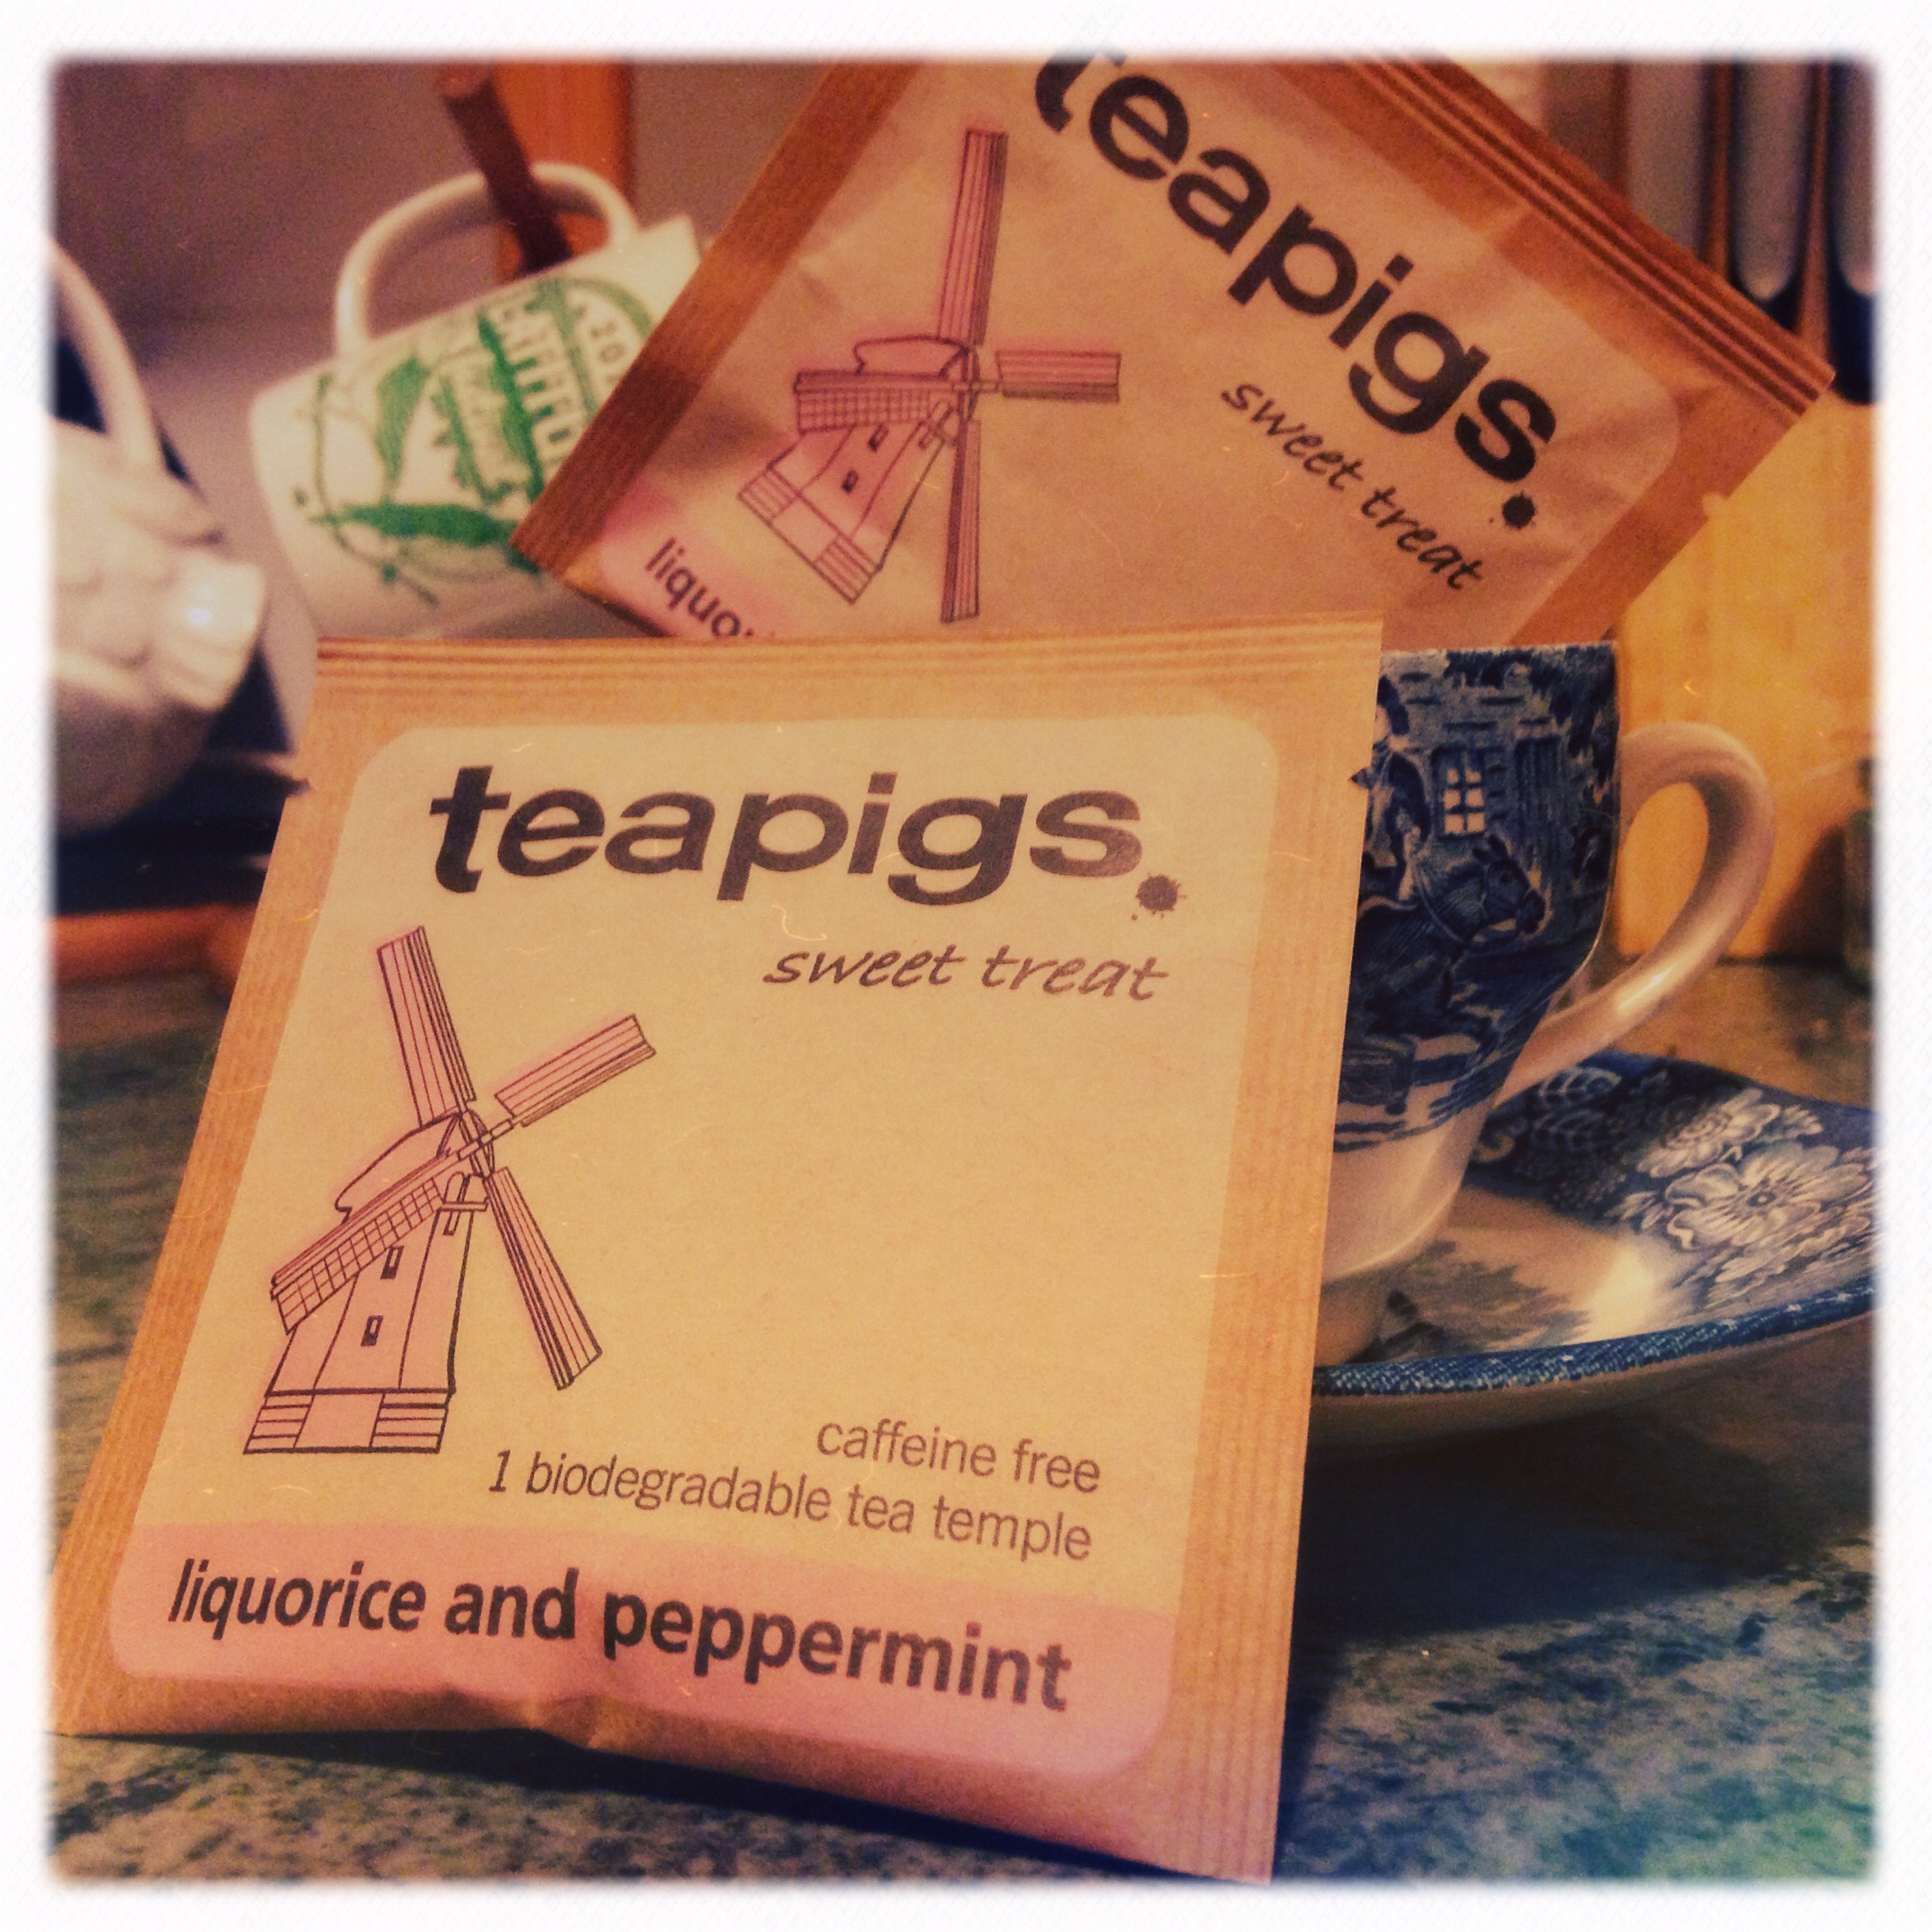 #FreebieFriday giveaway - let's talk teapigs!